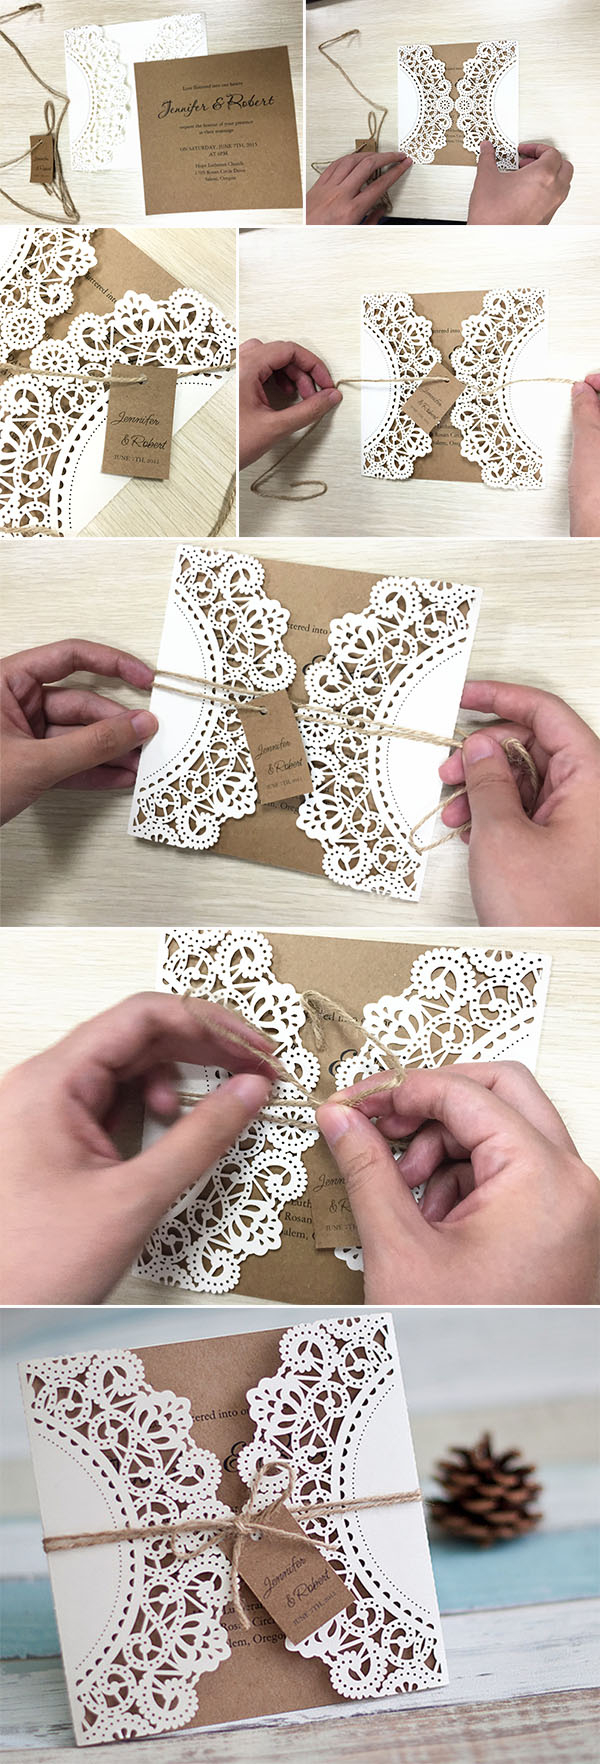 Diy Wedding Invitation Ideas Diy Wedding Ideas 10 Perfect Ways To Use Paper For Weddings